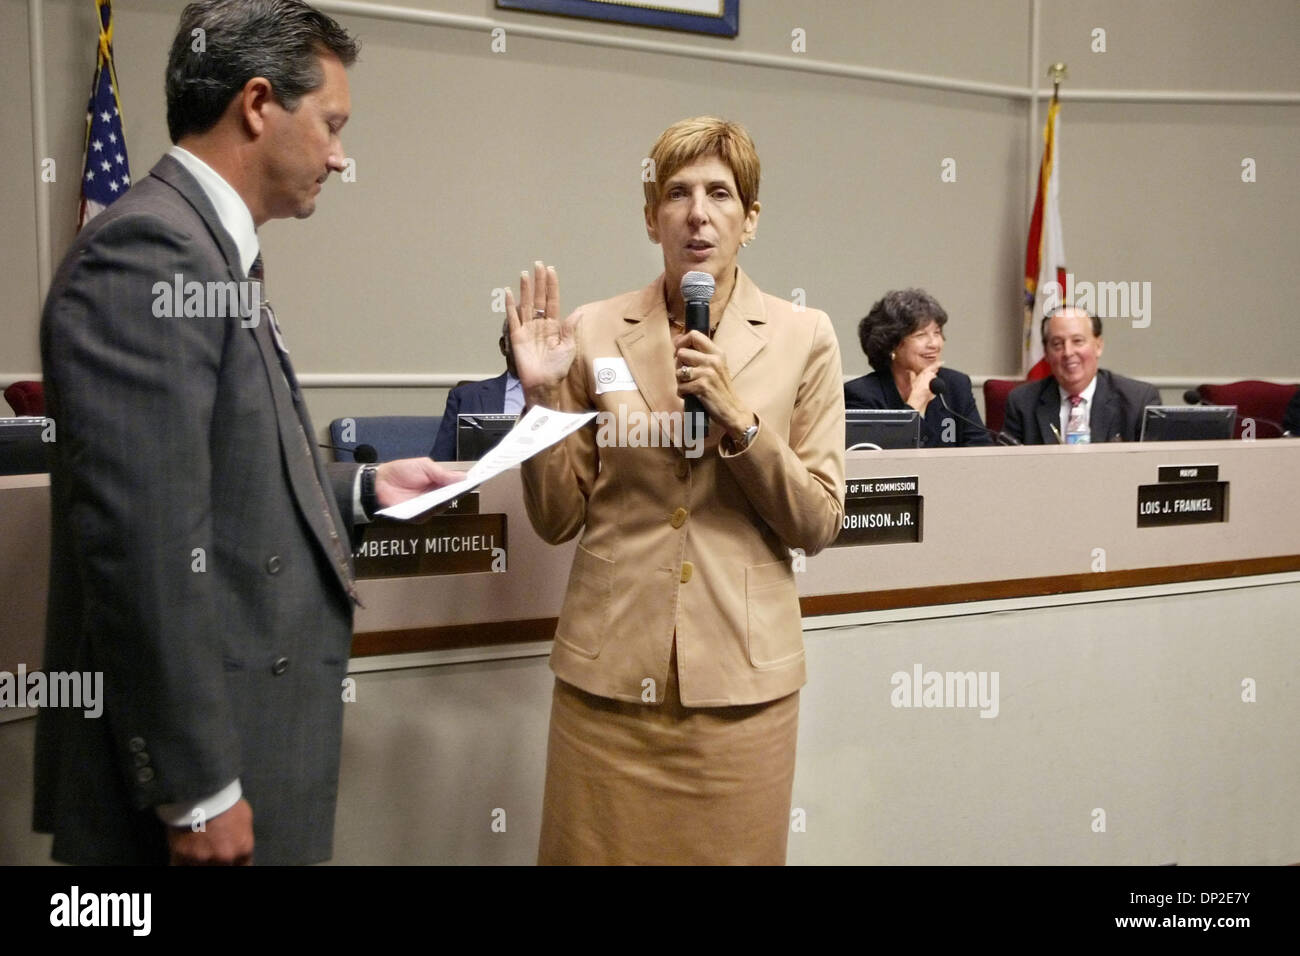 May 31, 2006; West Palm Beach, FL, USA; New West Palm Beach City Commissioner Geraldine Muoio, right is sworn in - Stock Image